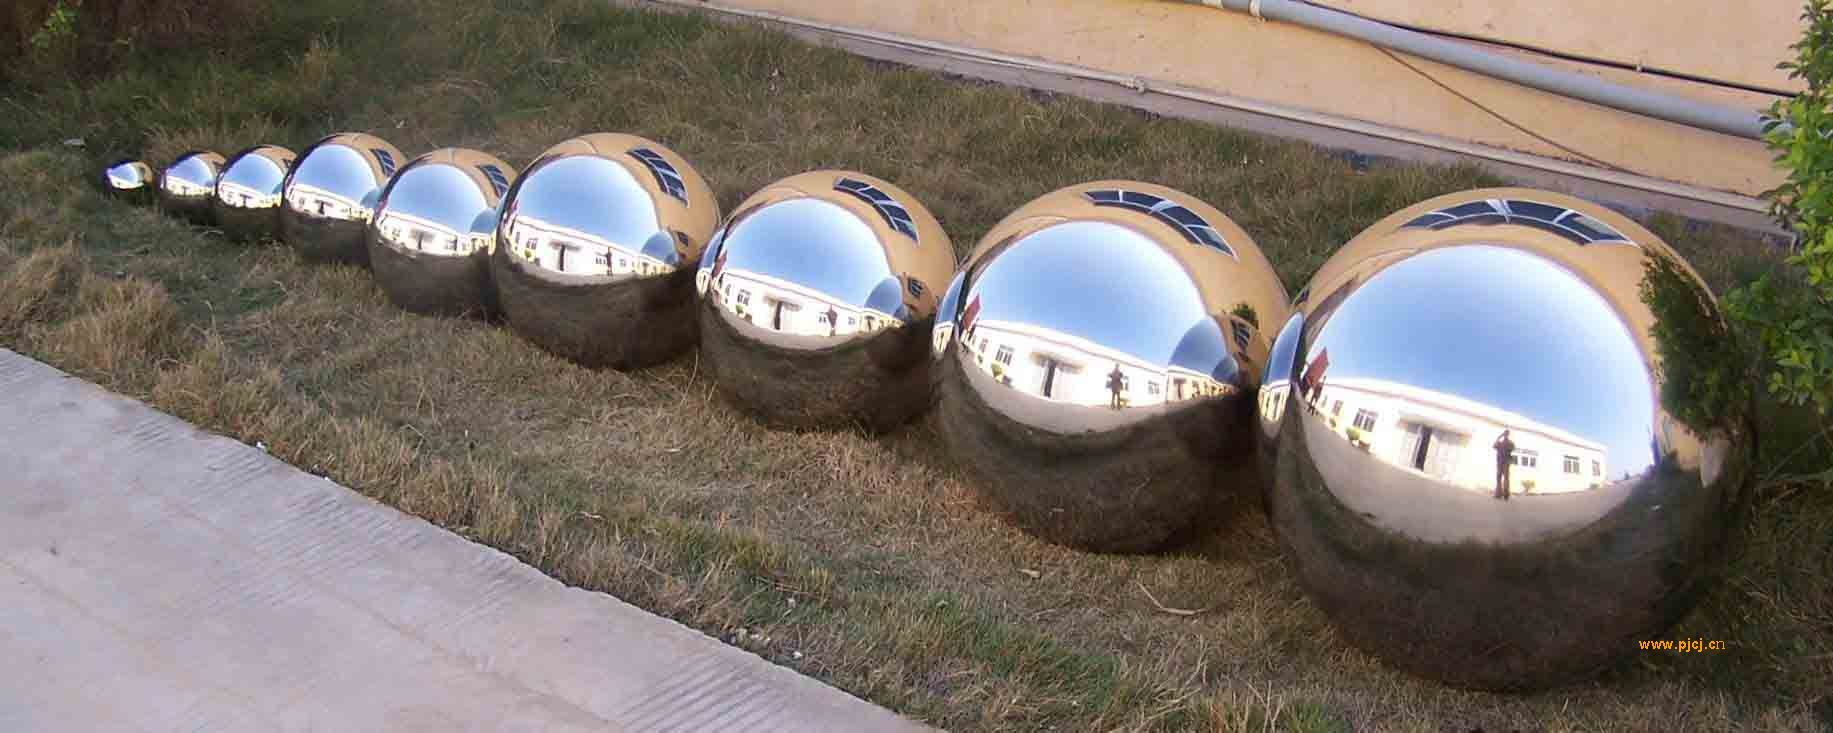 Superb Stainless Steel Ball For Garden Fountains Sculpture Decorative